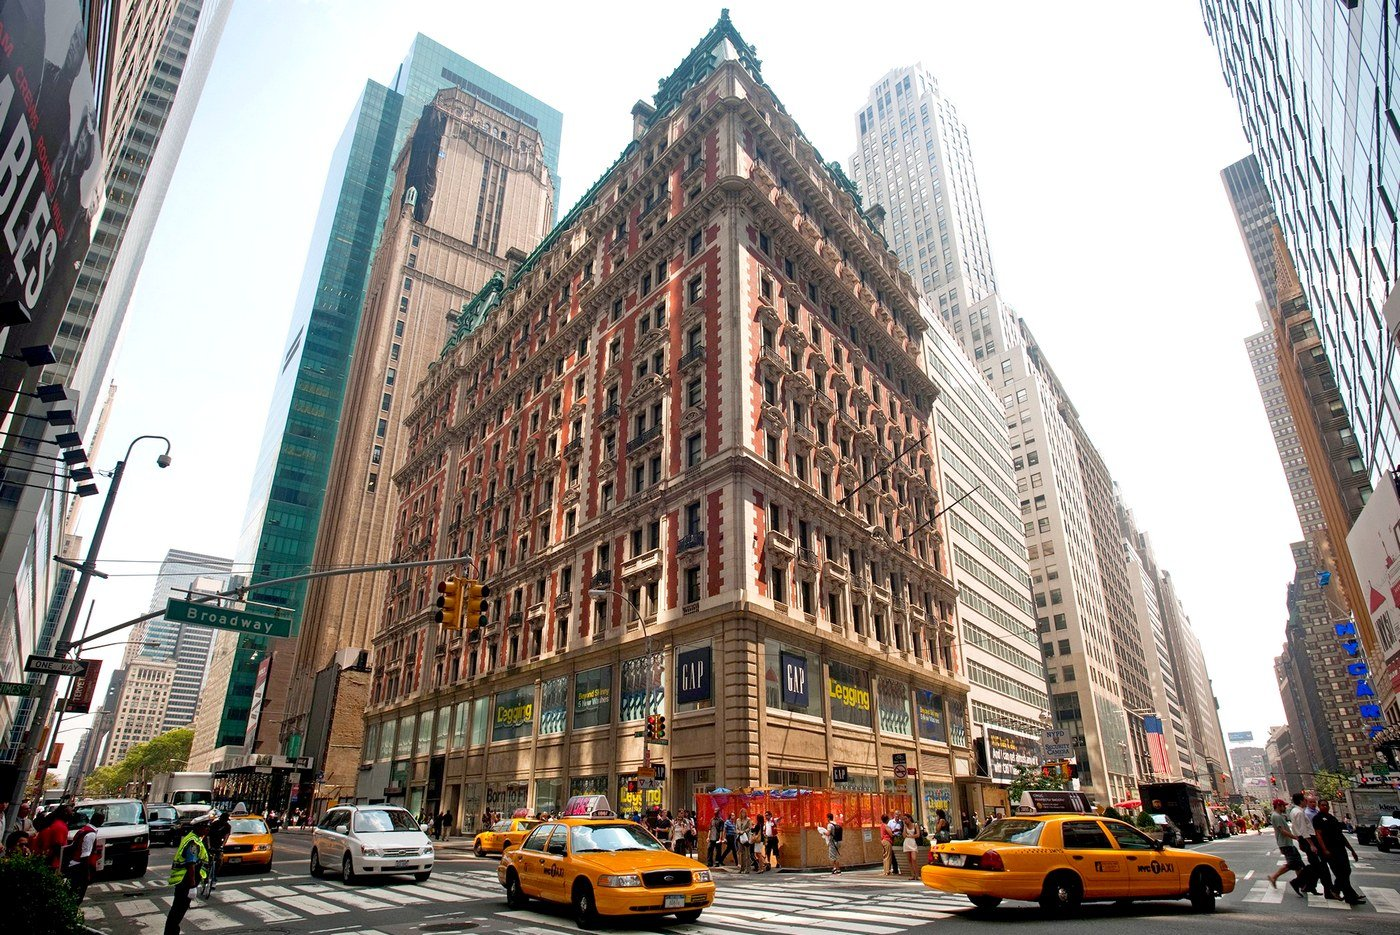 Hotels New York Hotel  Deals Refurbished  2020